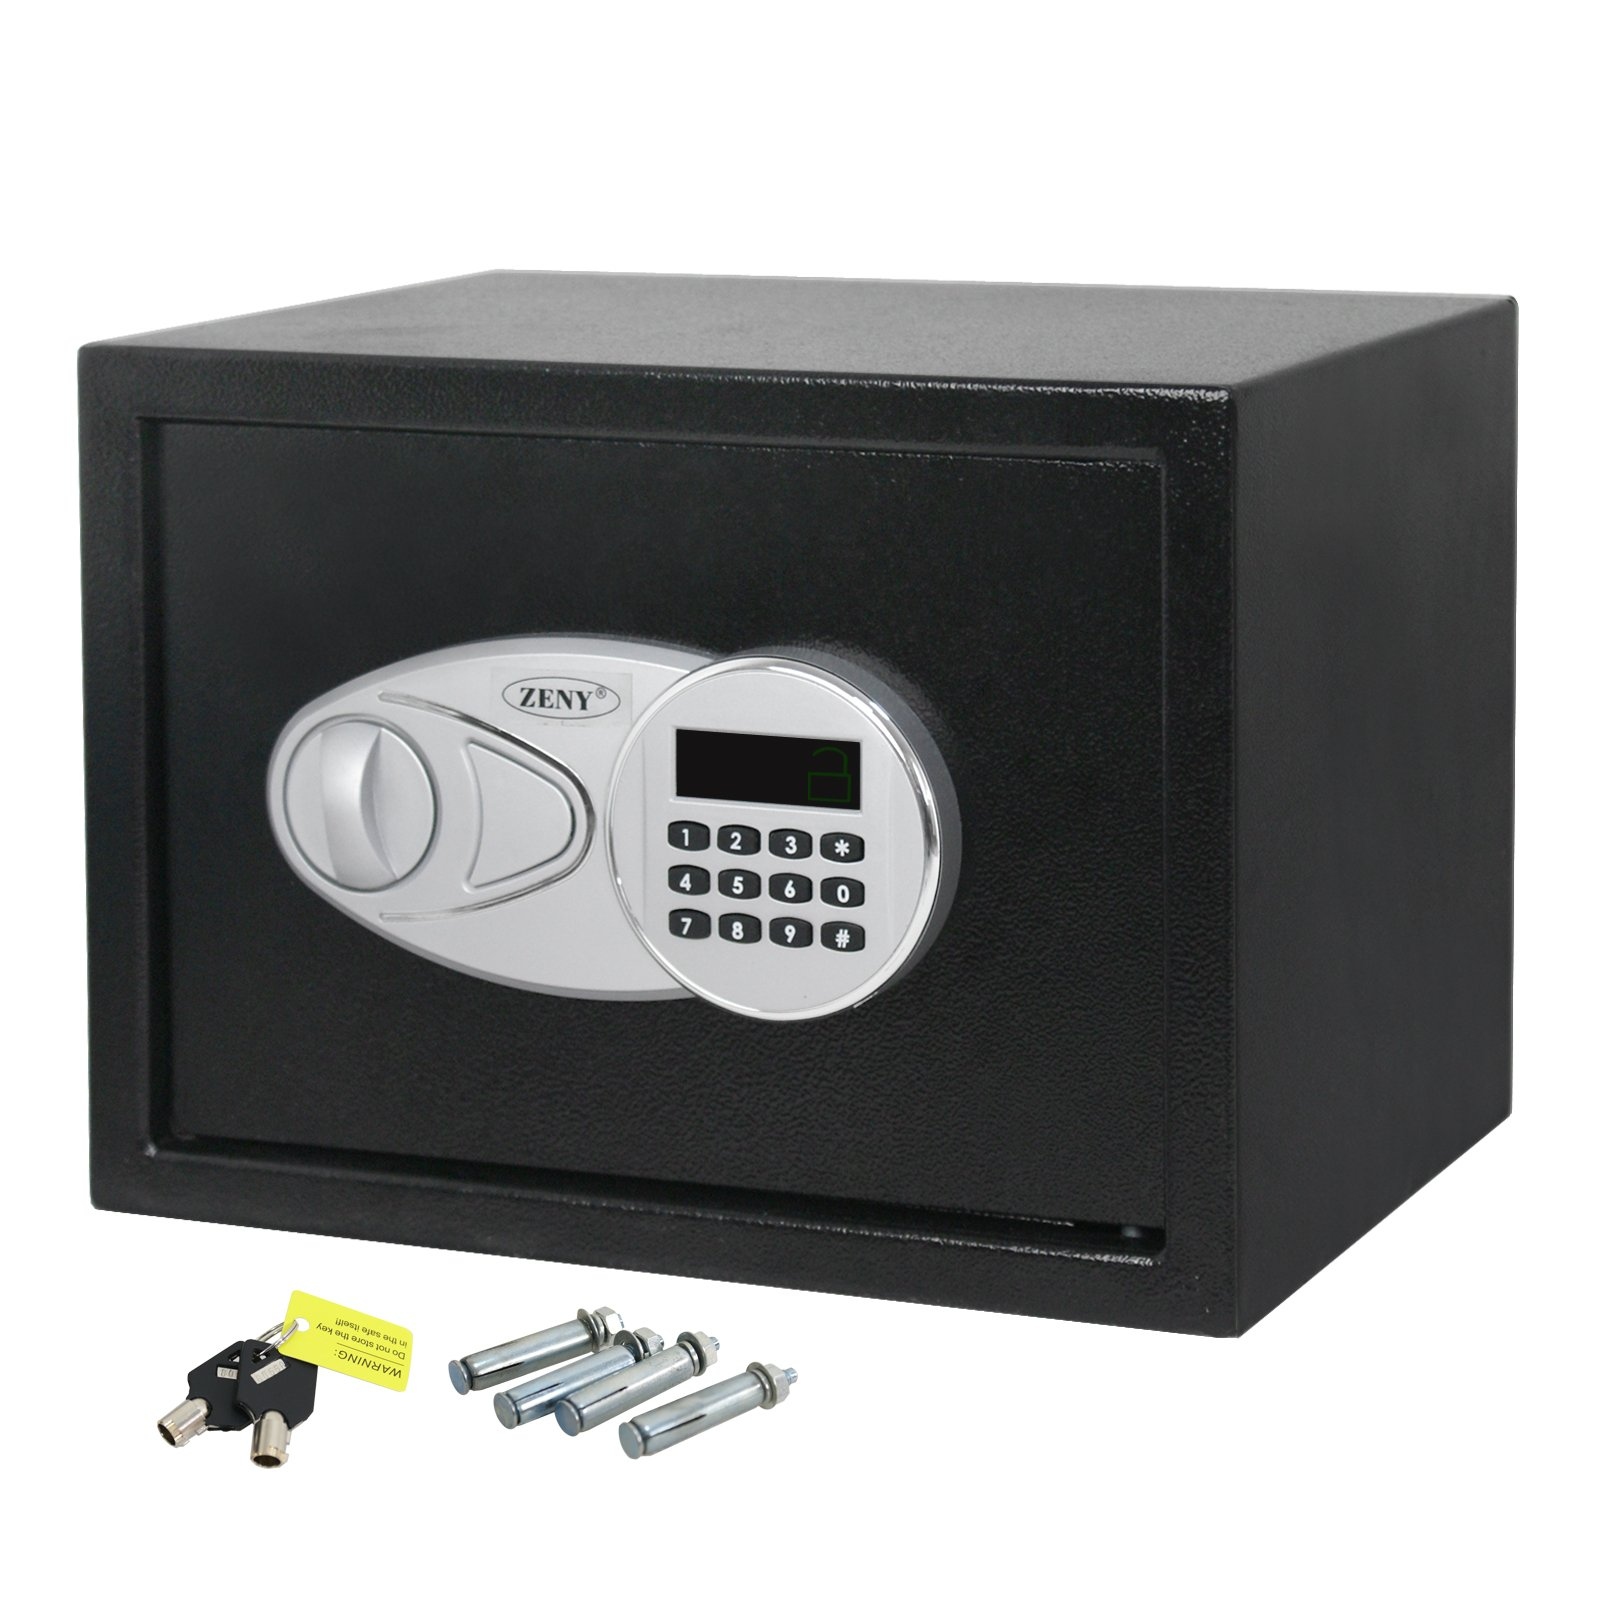 ZENY Electronic Security Safe Digital Lock Fire Proof Jewelry Cash Gun Box (F30) by ZENY